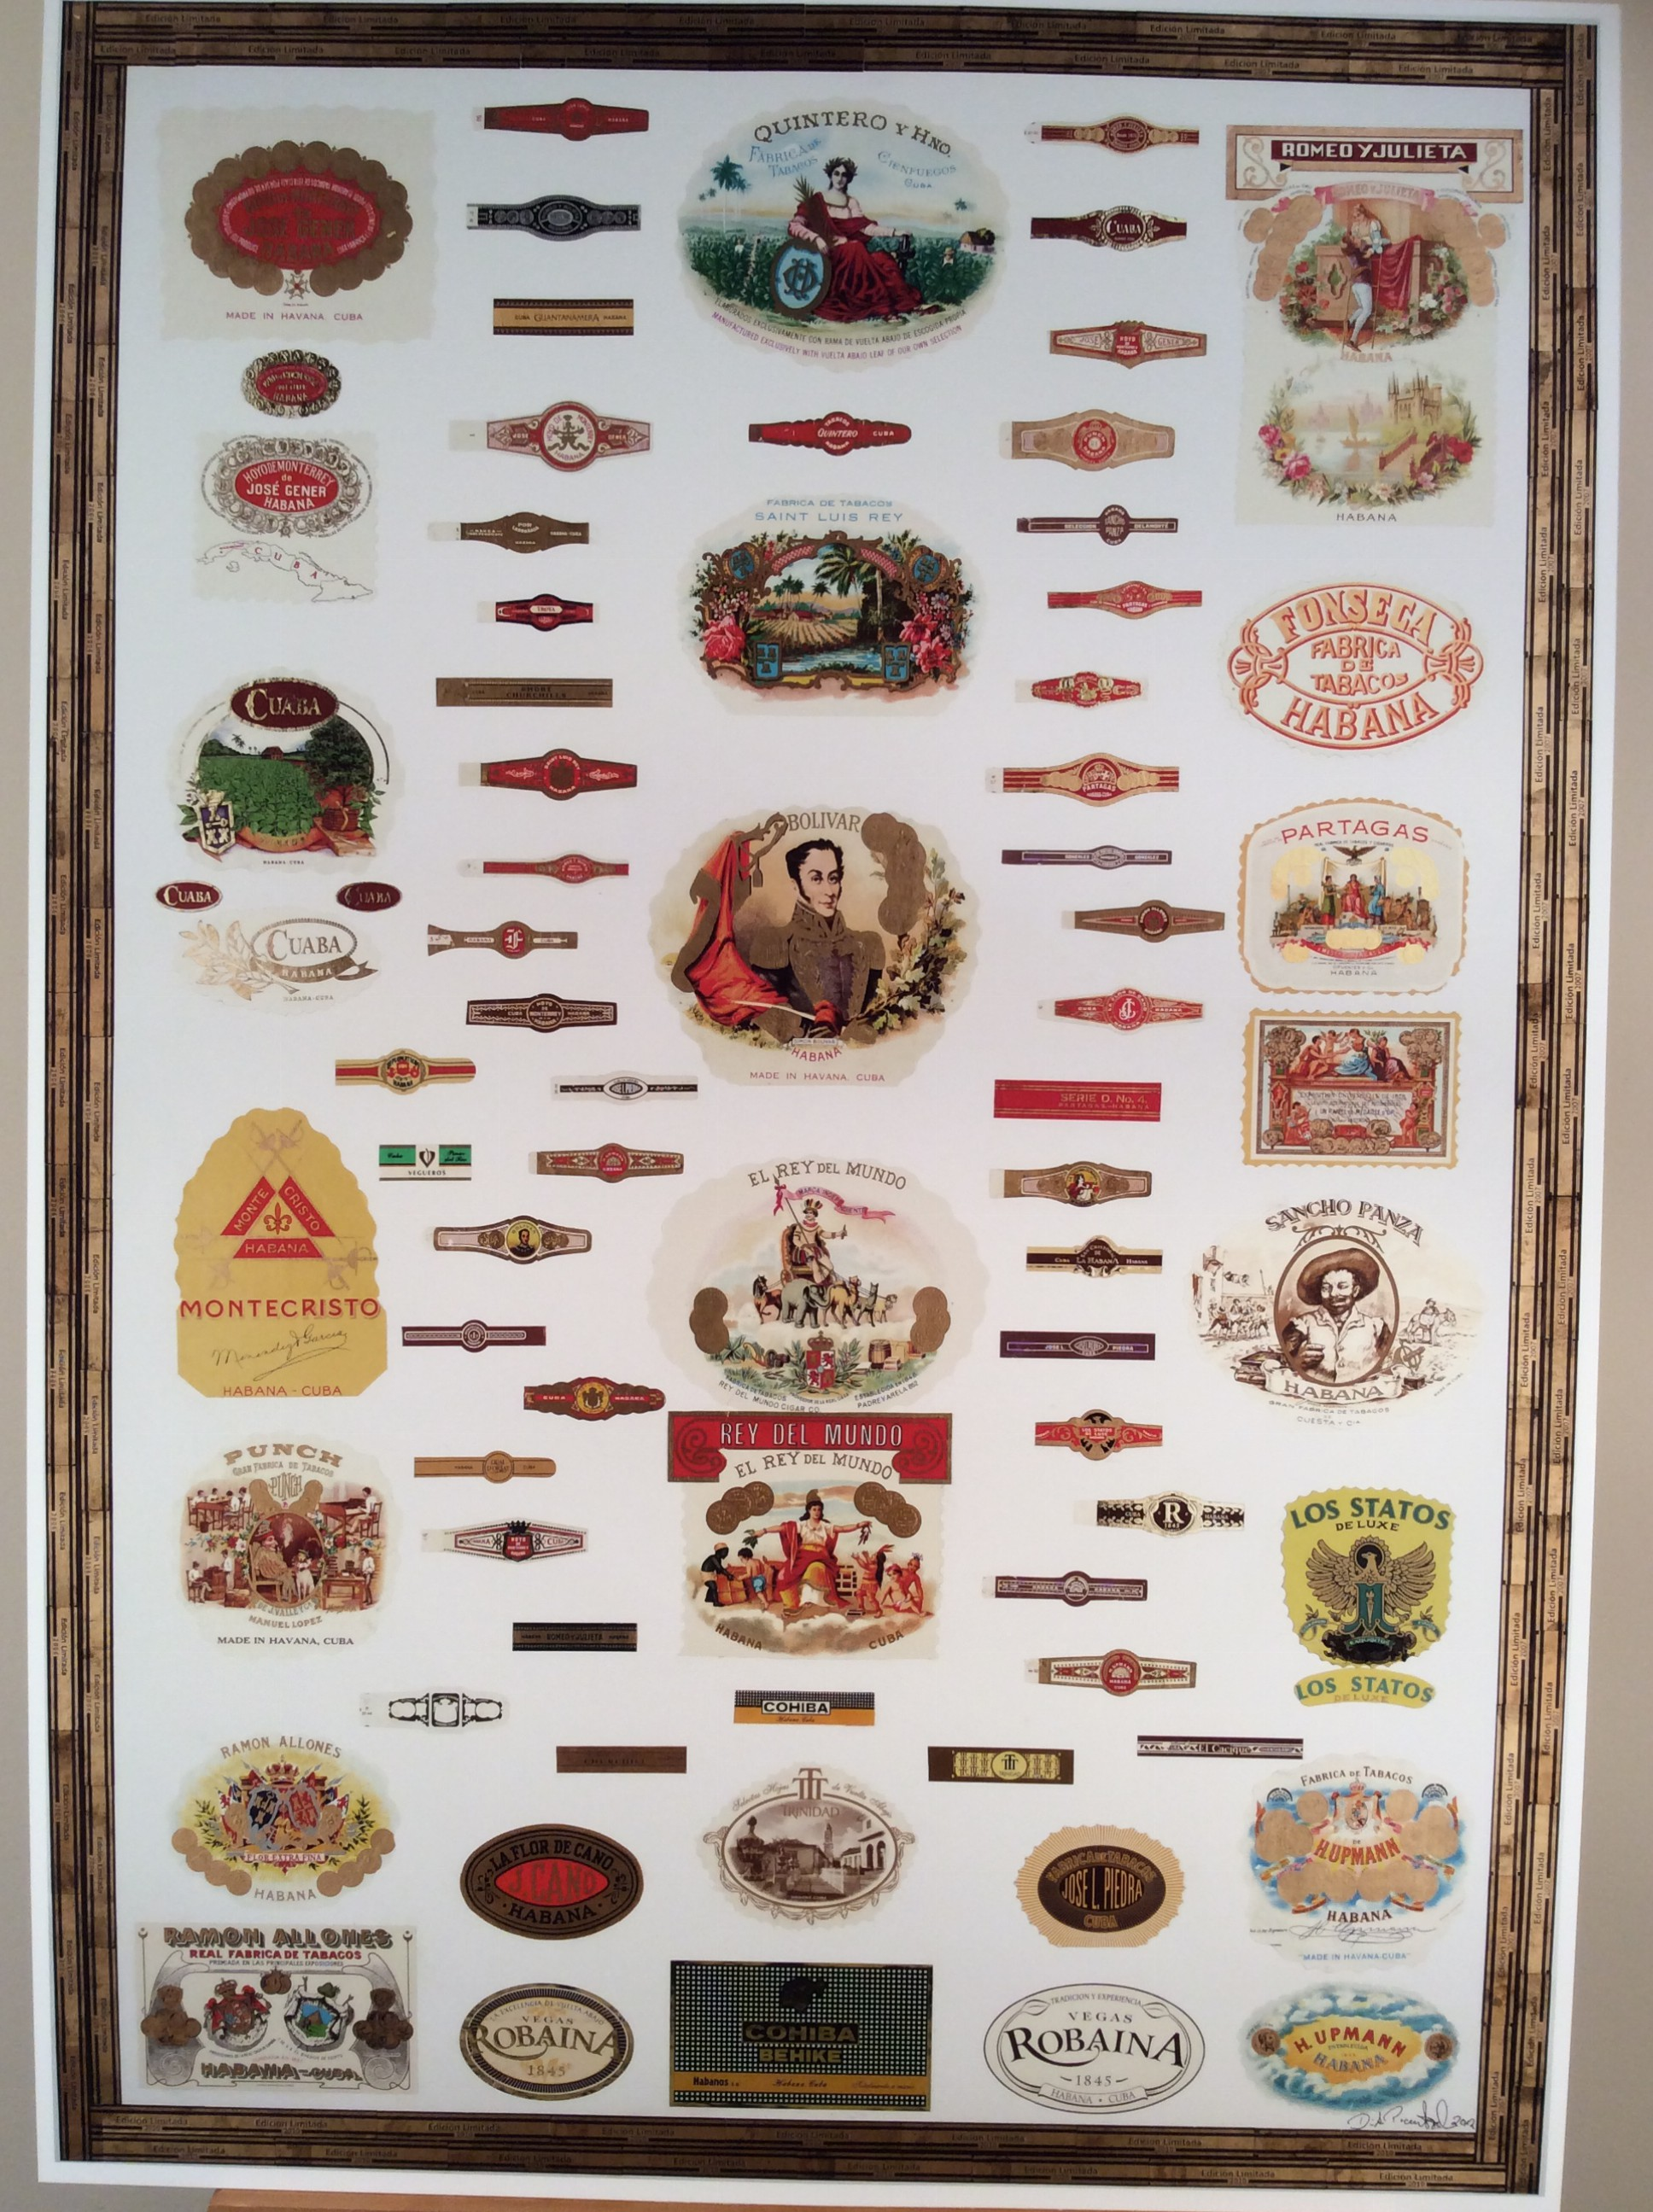 Print of Cuban cigar brands of presence